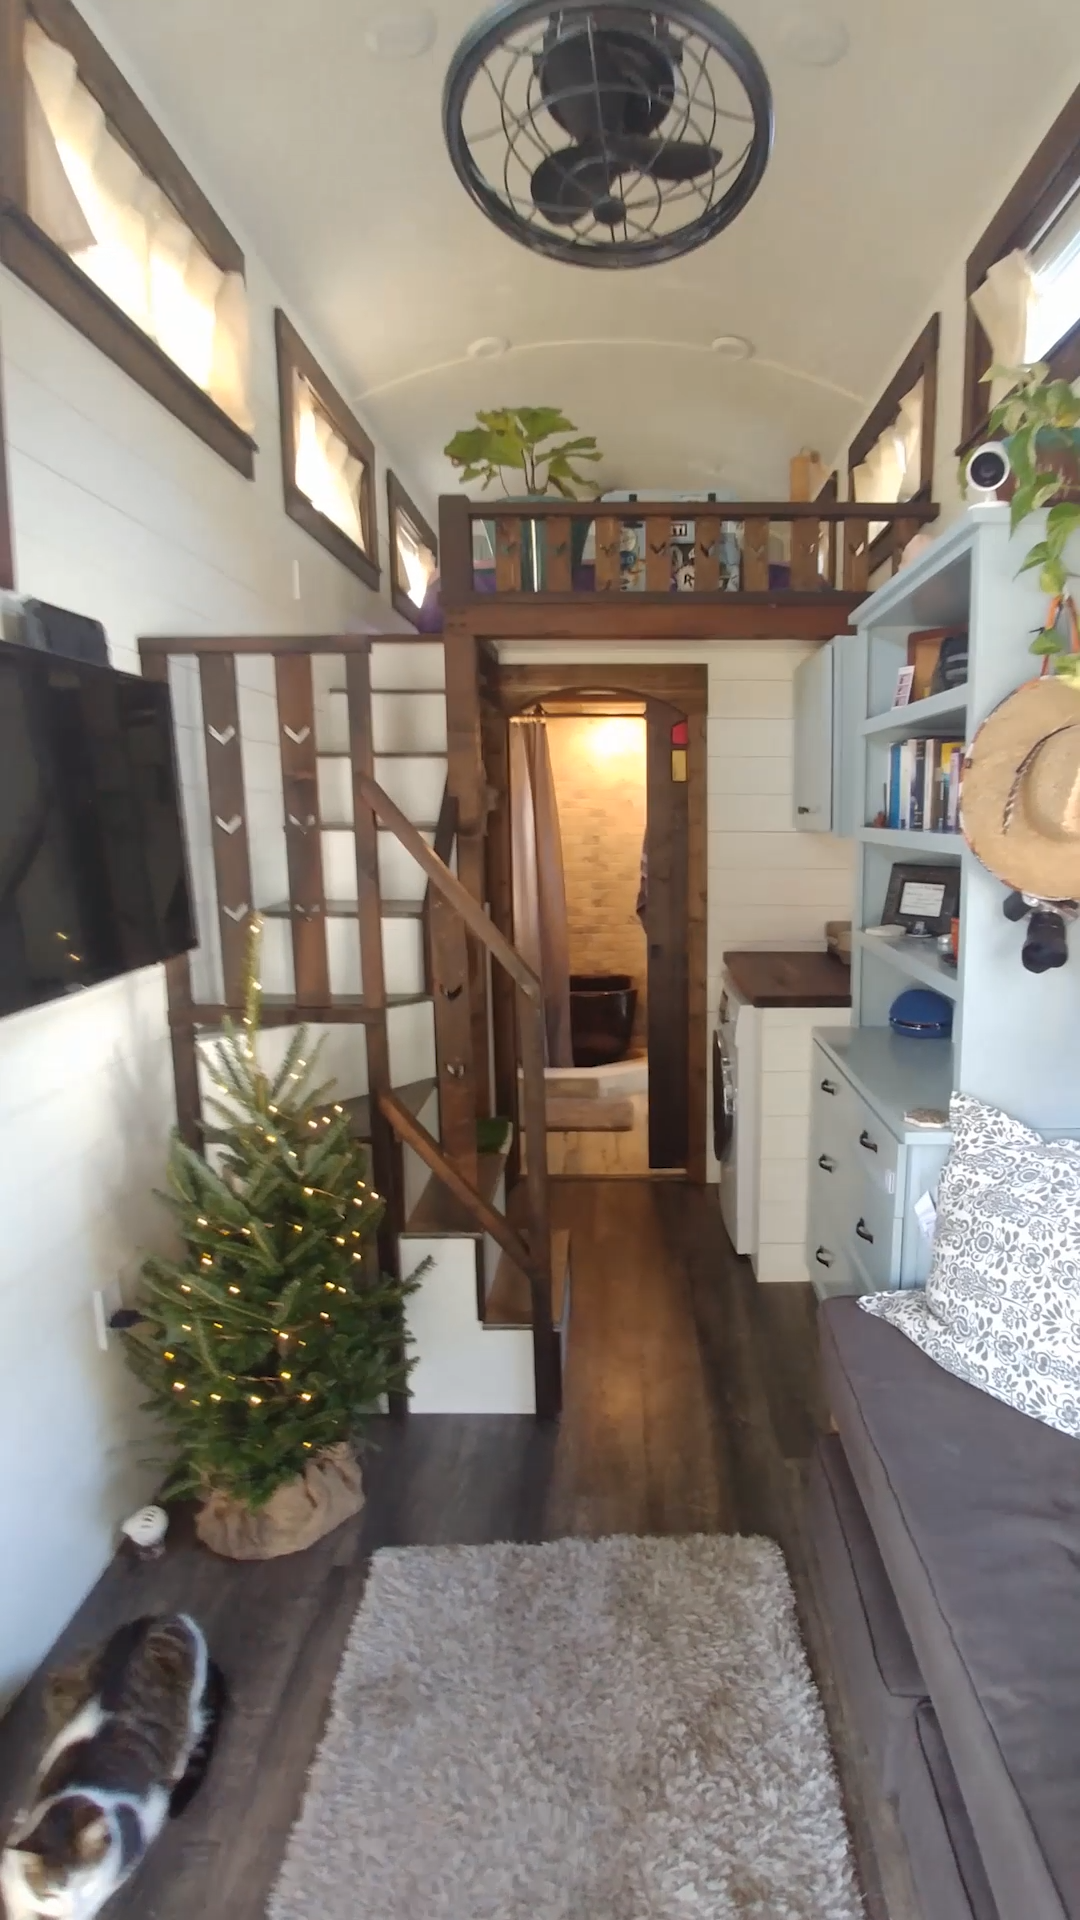 Tiny House Tour of Tiffany the Tiny Home! #tinyhome